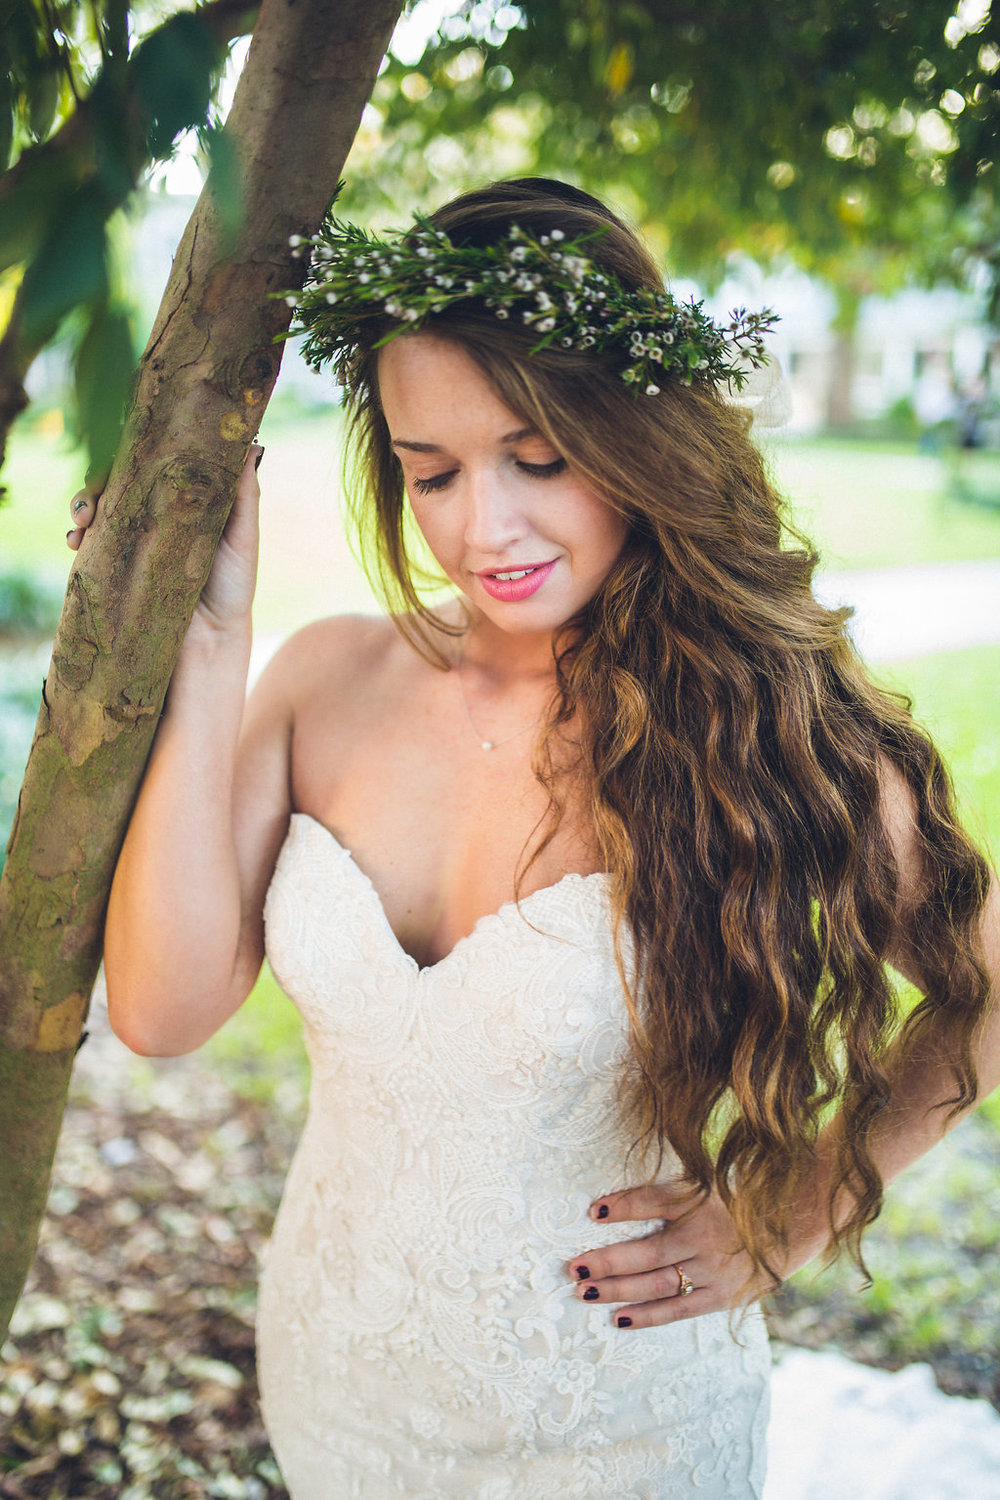 alexis-sweet-photography-ivory-and-beau-bridal-boutique-mirelle--maggie-sottero-rebecca-ingram-lace-mermaid-savannah-wedding-savannah-square-wedding-flower-crown-boho-bride-savannah-wedding-planner-savannah-bridal-boutique-savannah-florist-11.jpg